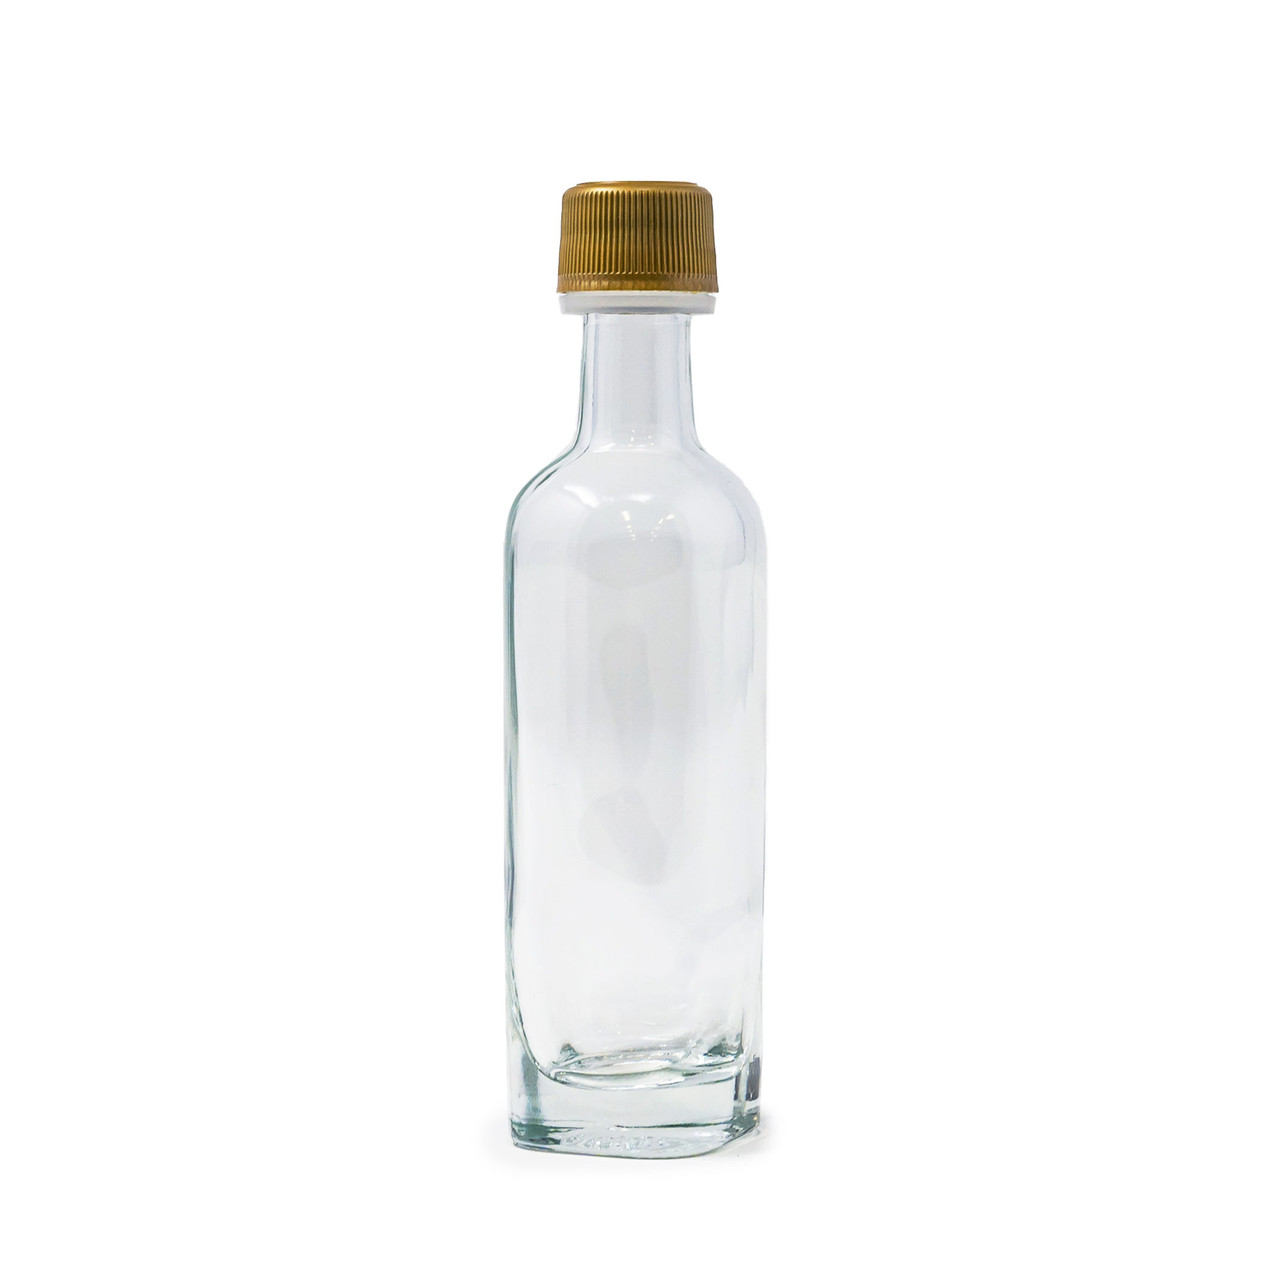 Bellolio Bottles for Maple Syrup - Nip